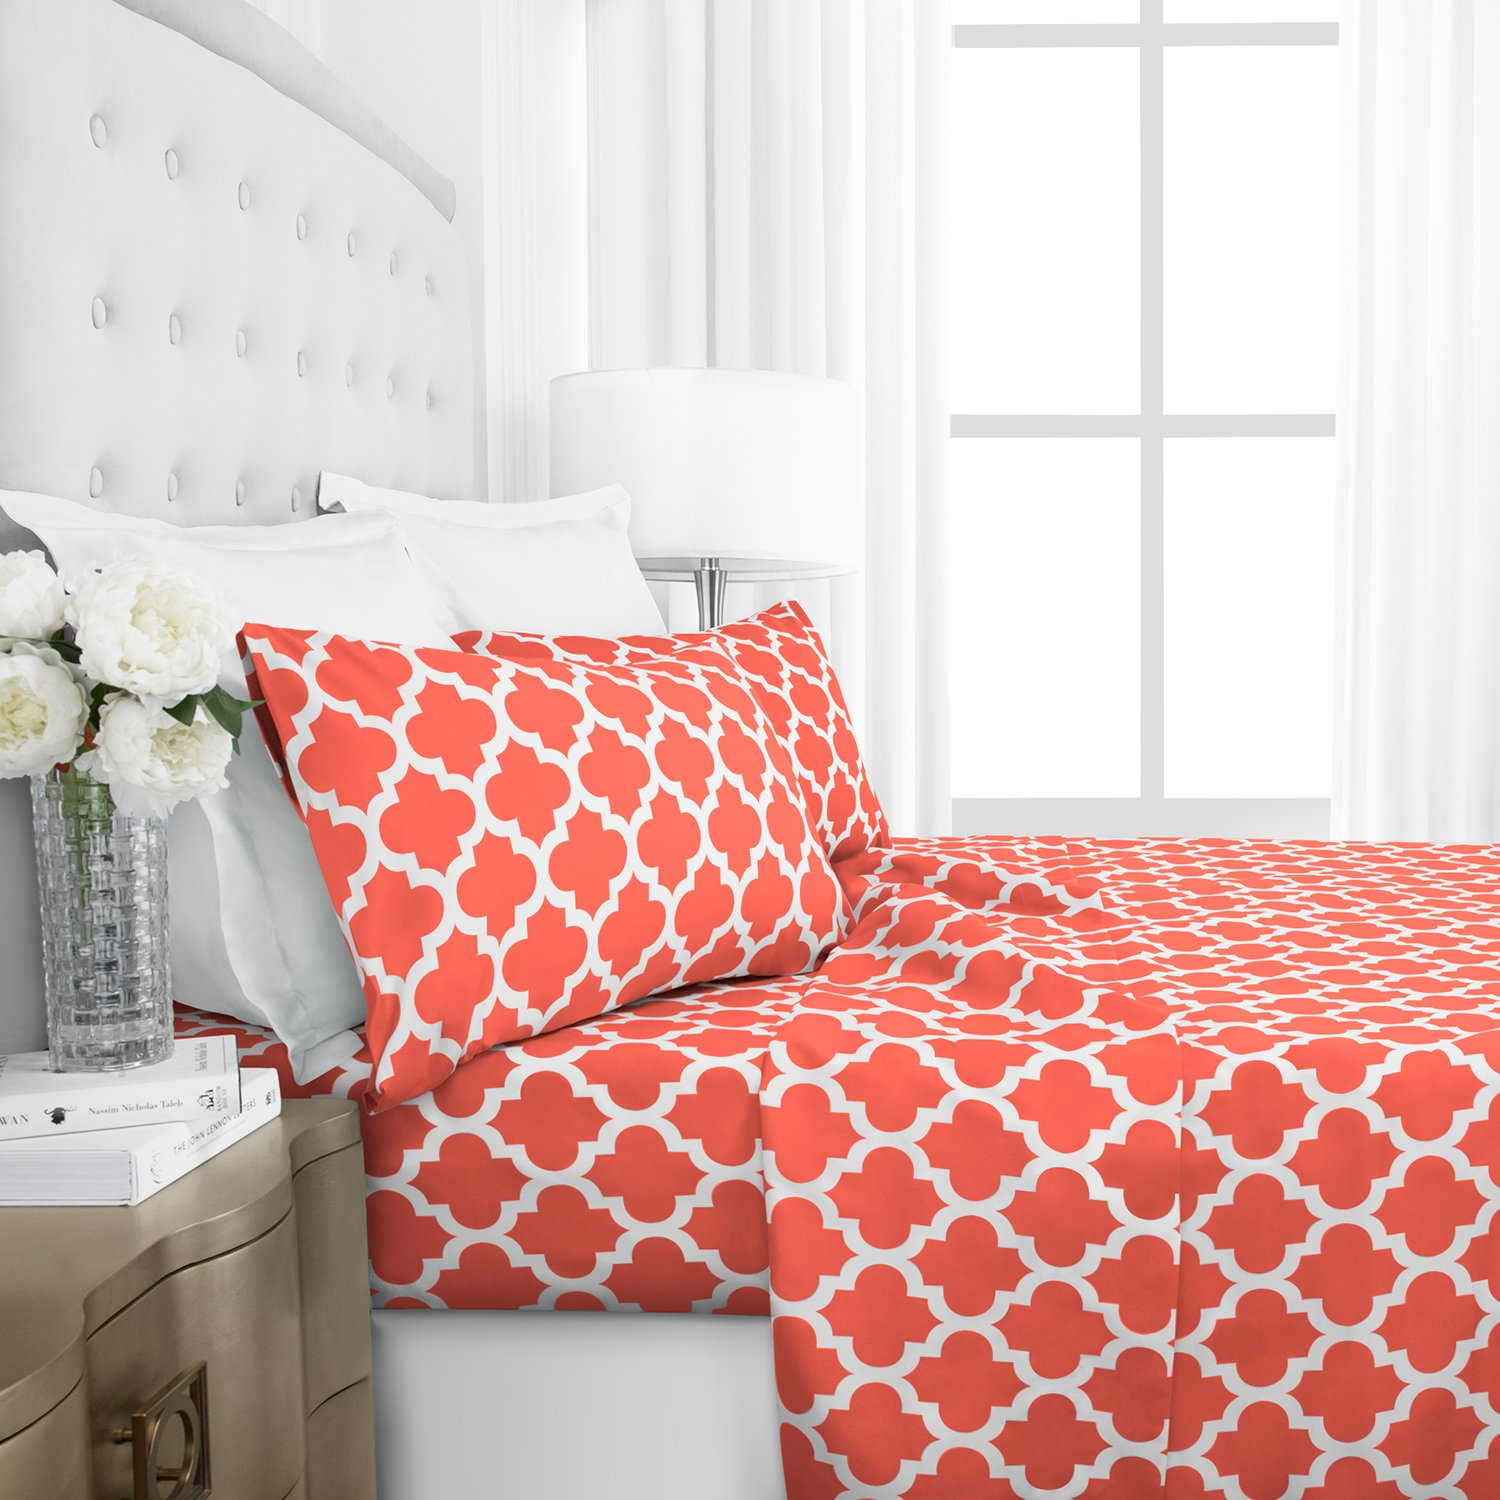 Hypoallergenic Printed Sheet and Pillowcase Set - Full - Coral